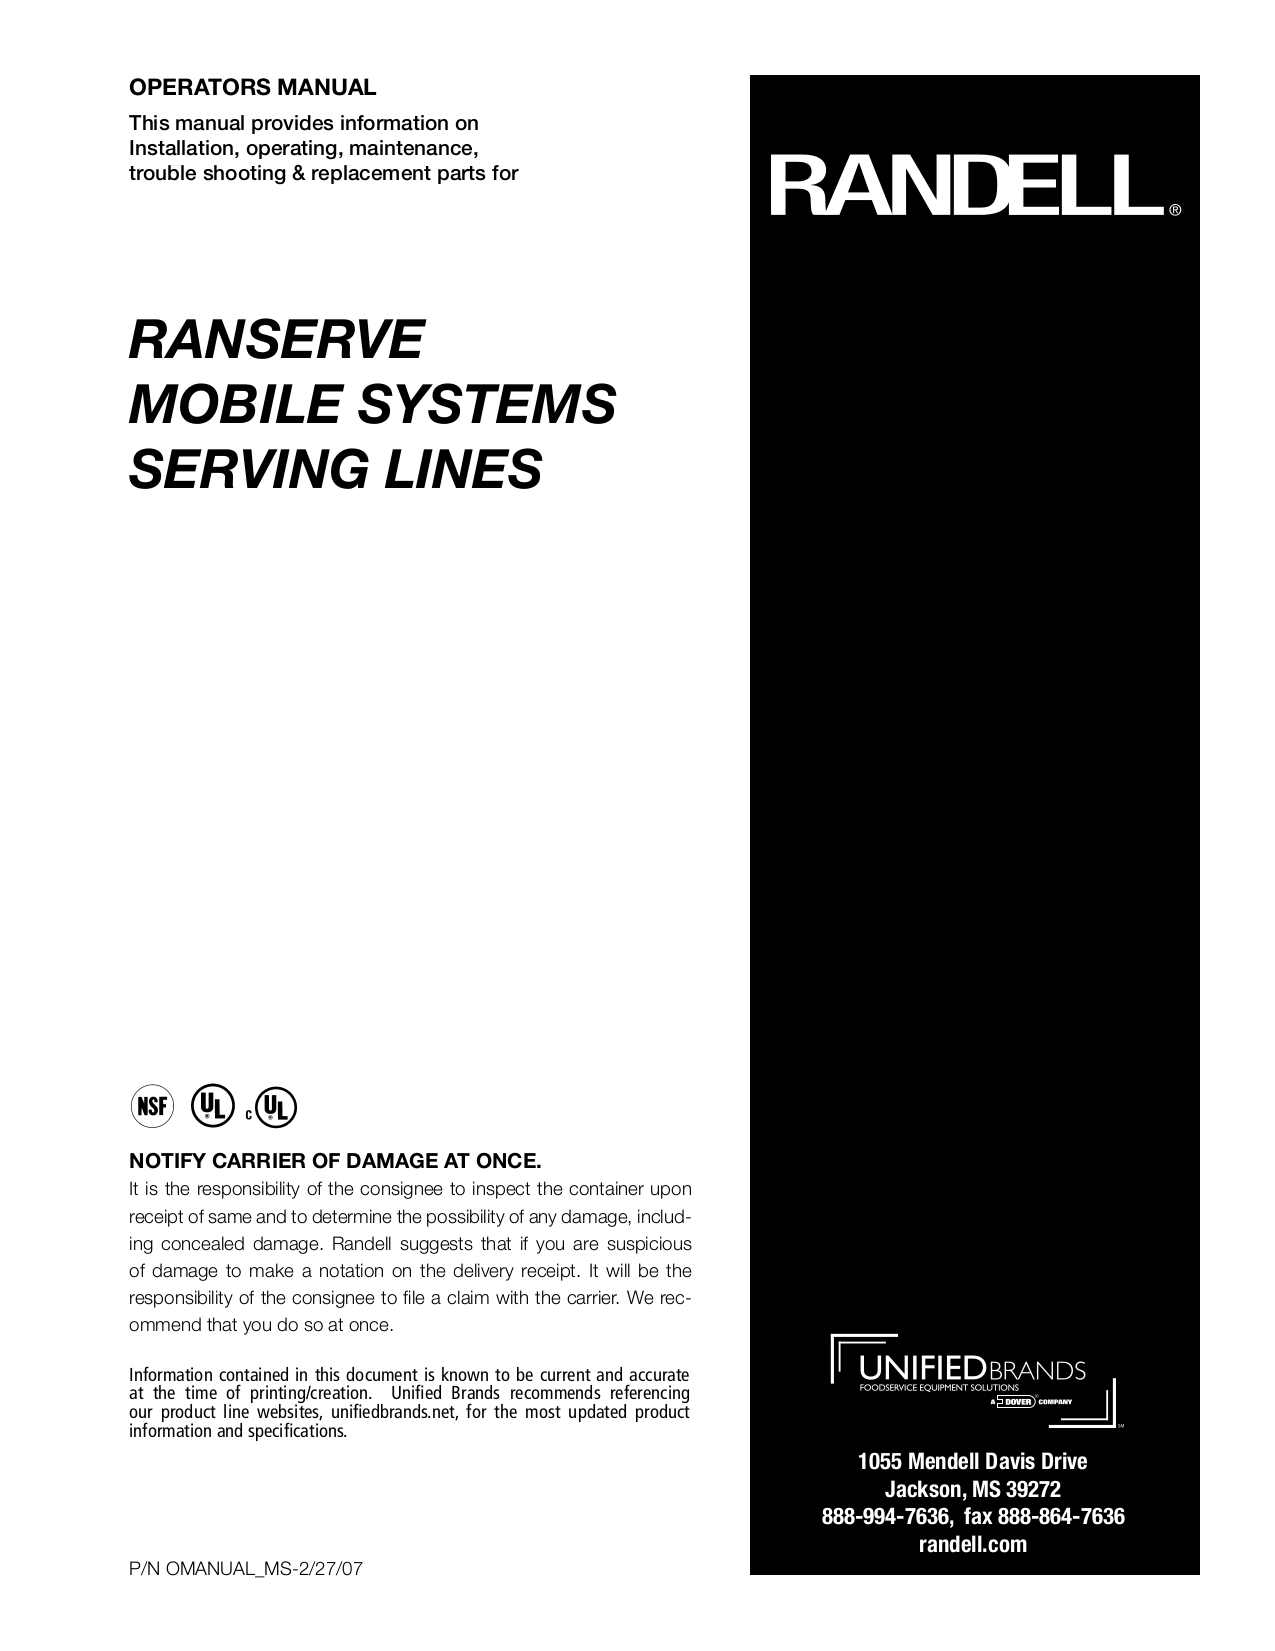 pdf for Randell Other 14G SCA-3 Food Holding Units manual